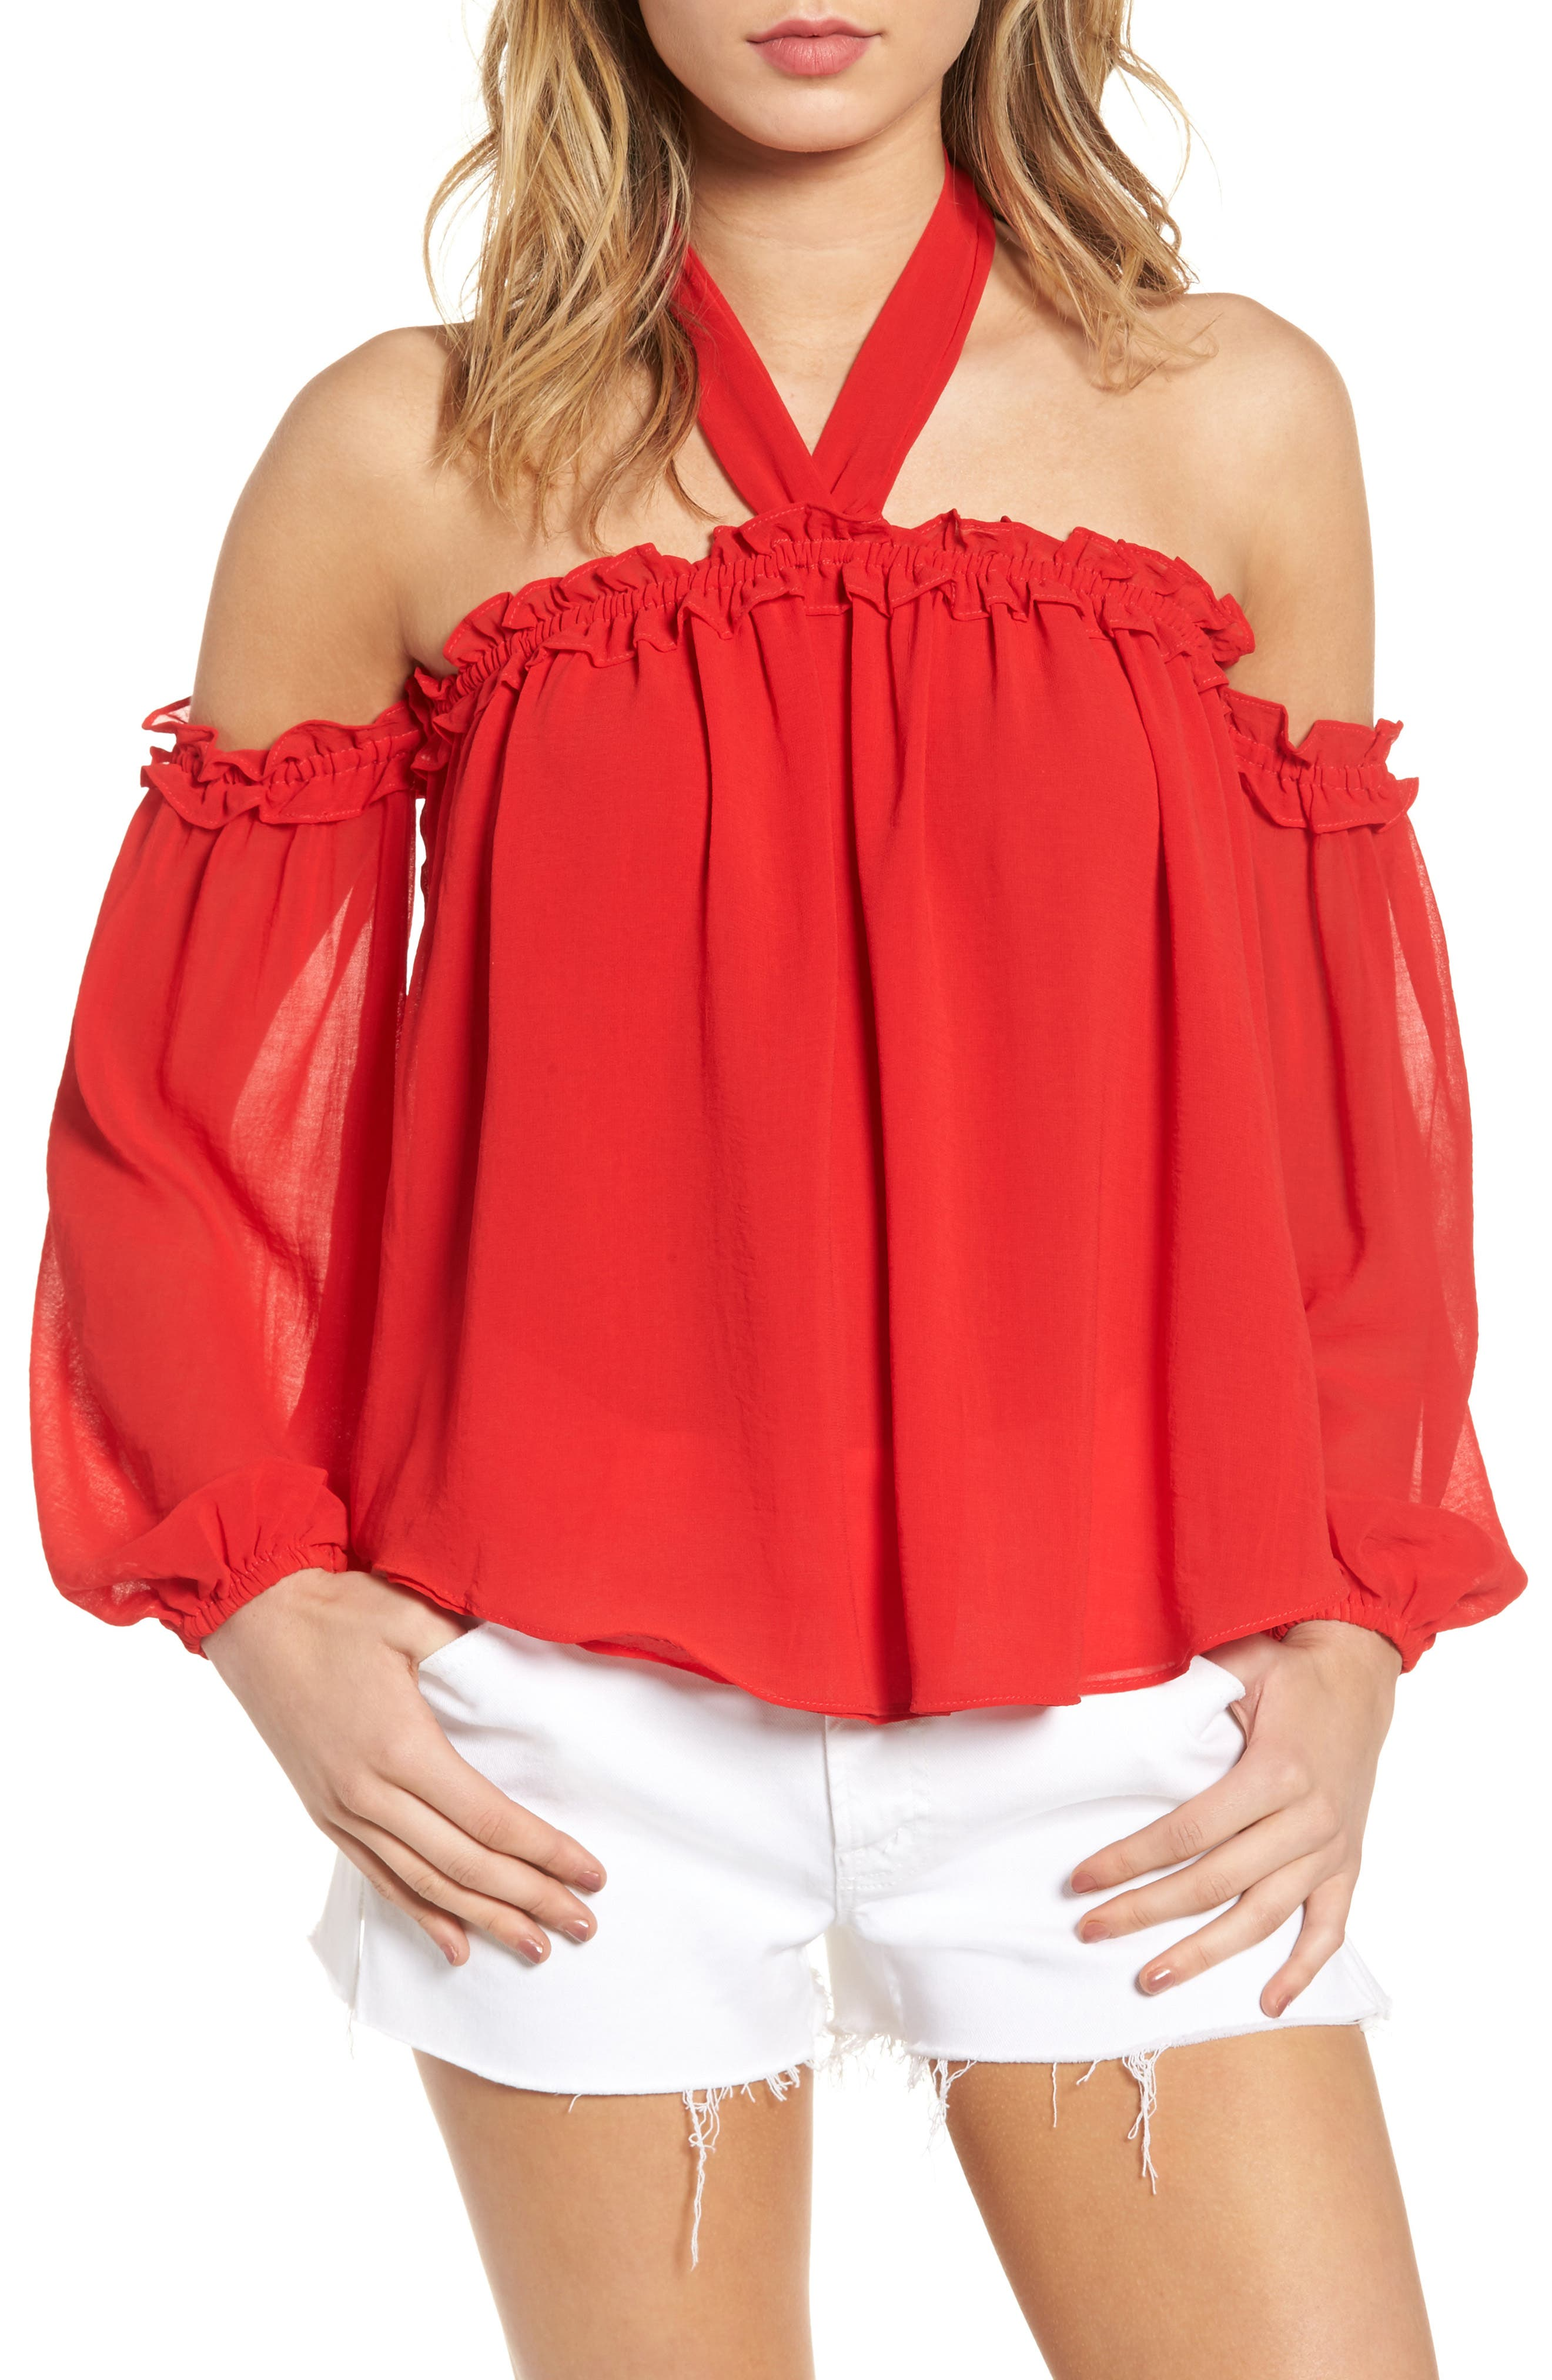 Lively Off the Shoulder Top,                         Main,                         color, Red